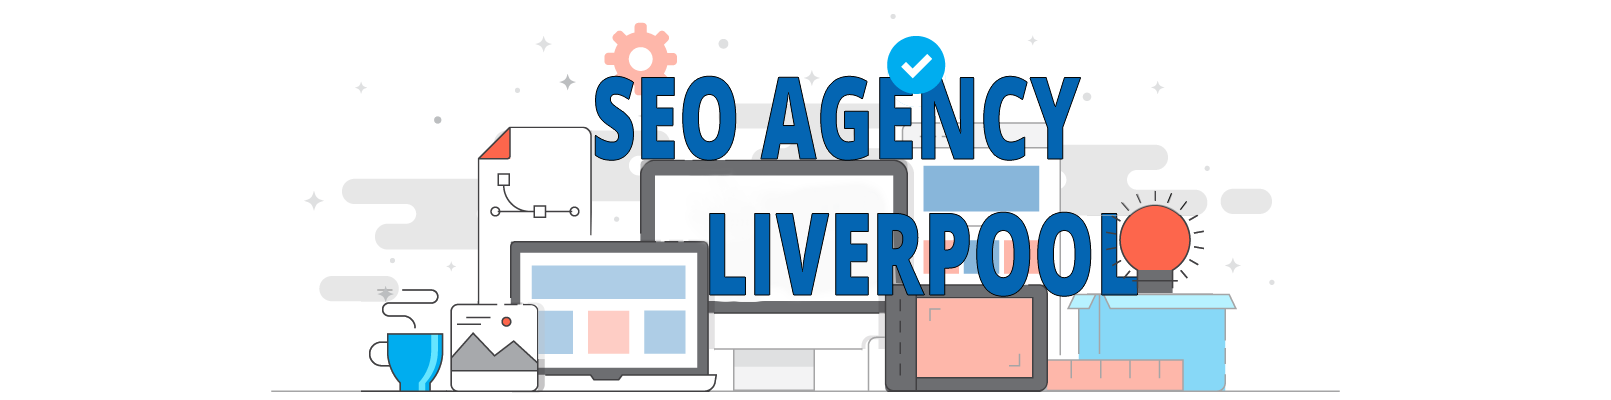 seo agency liverpool: drive organic traffic to your website